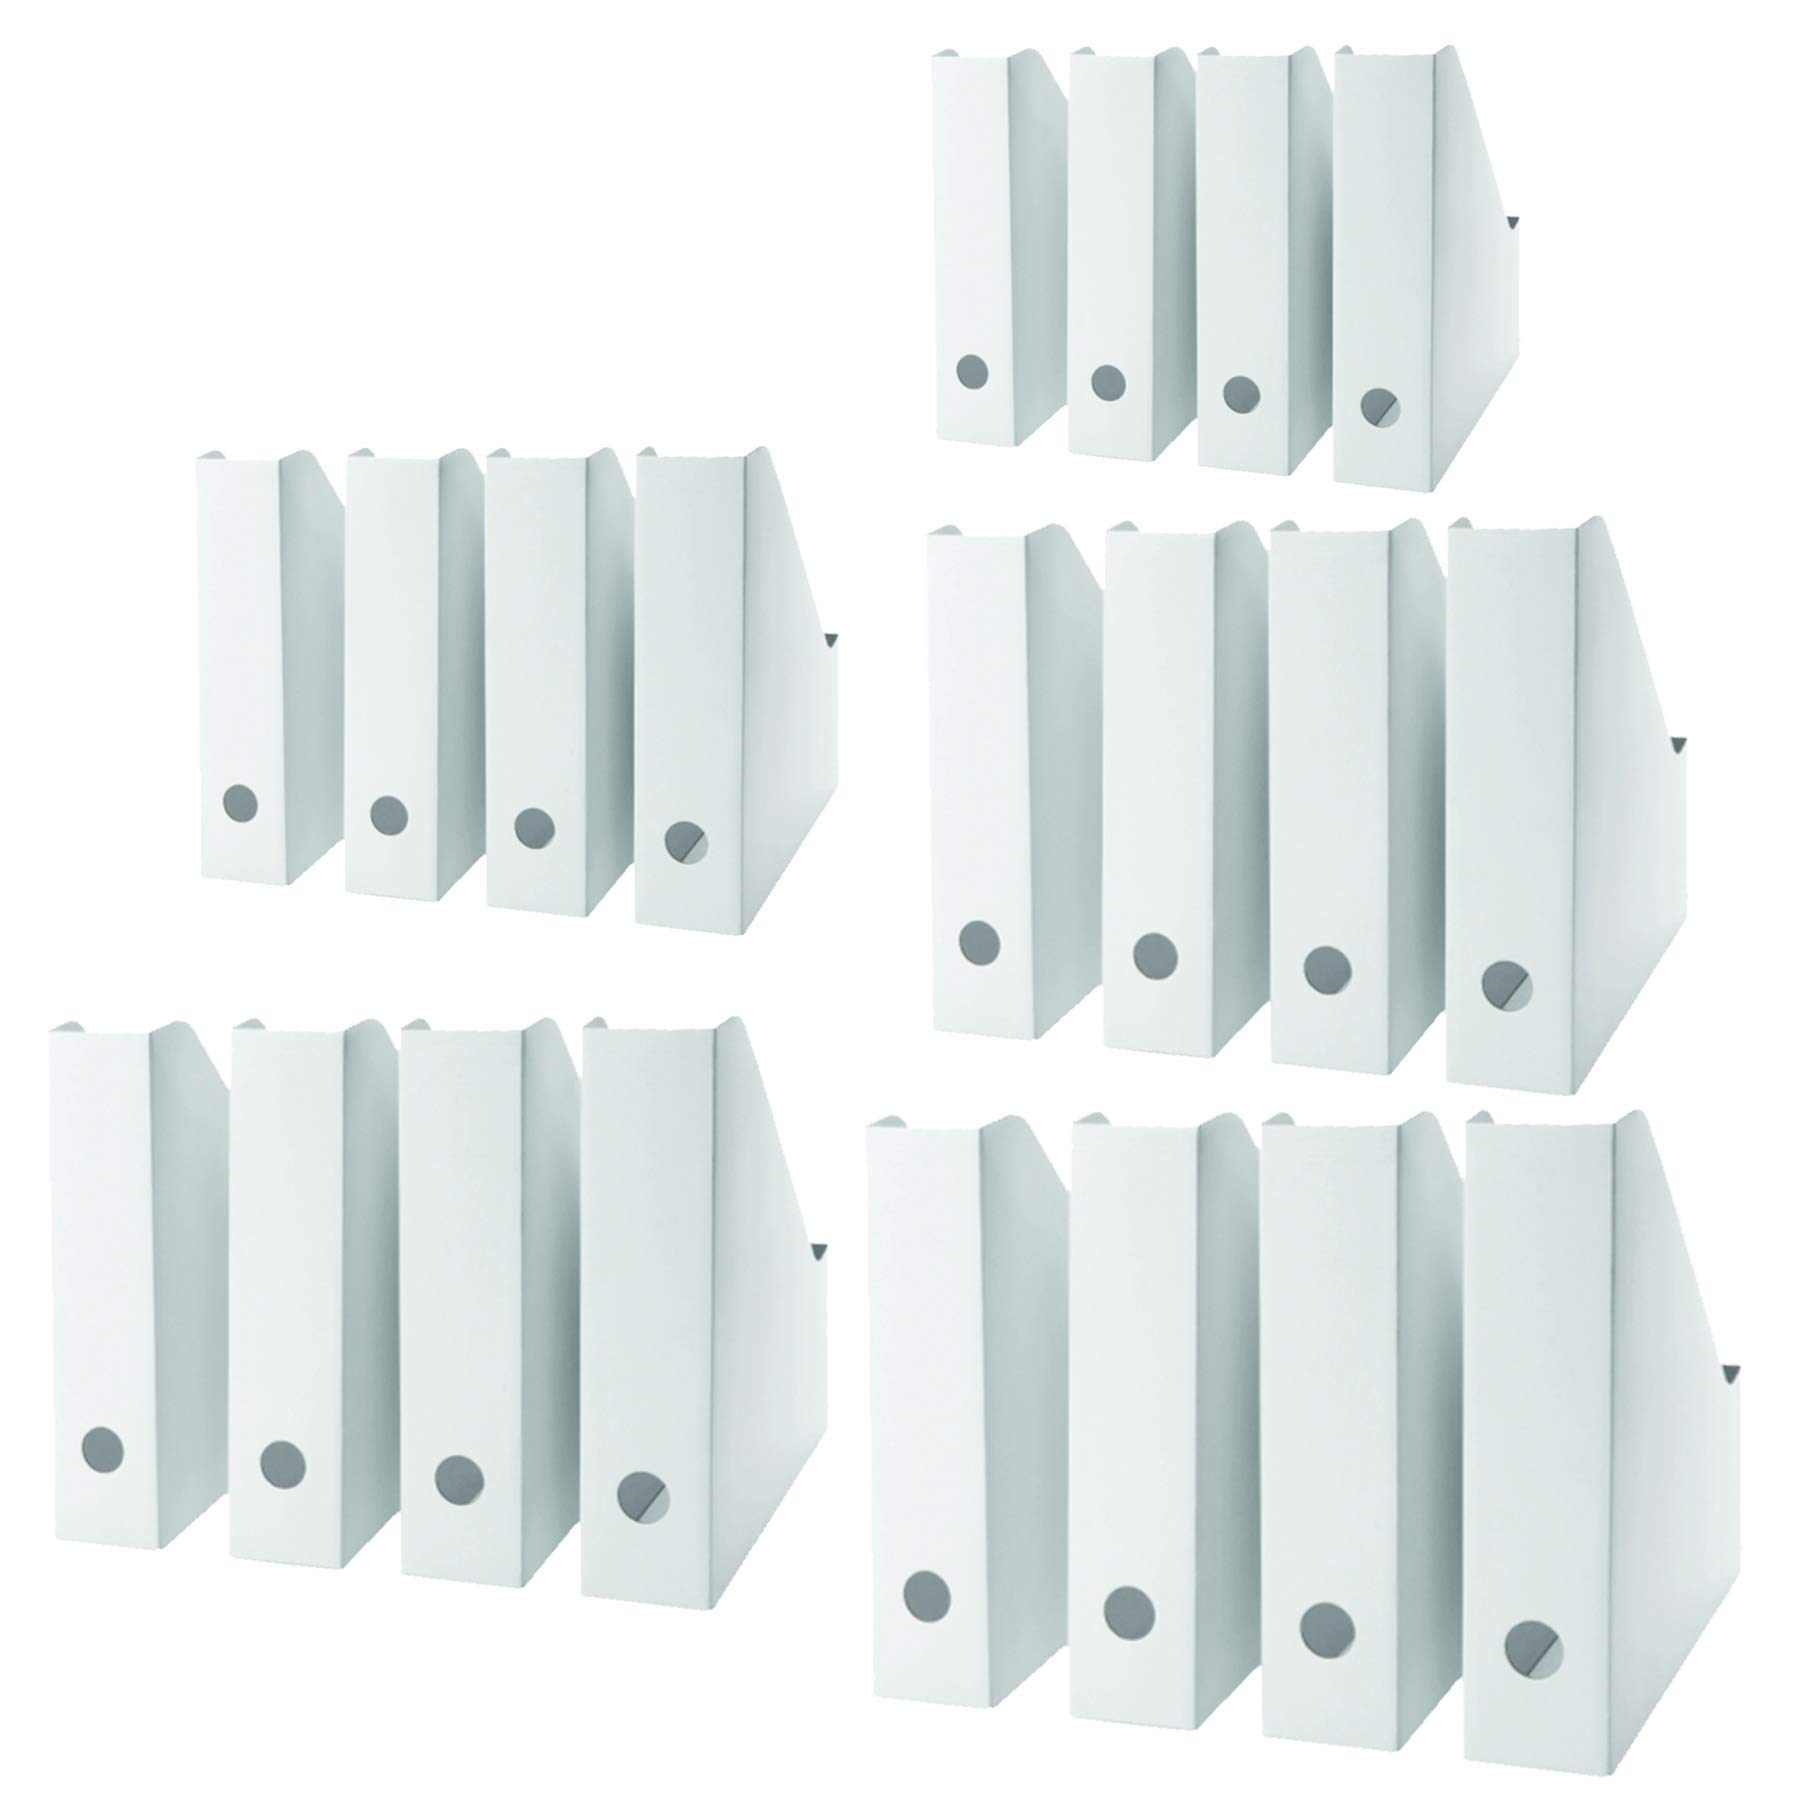 20 Pack Magazine, Document Organizer Holder Laminated in White for Office Home use (20) IKEA comparable.